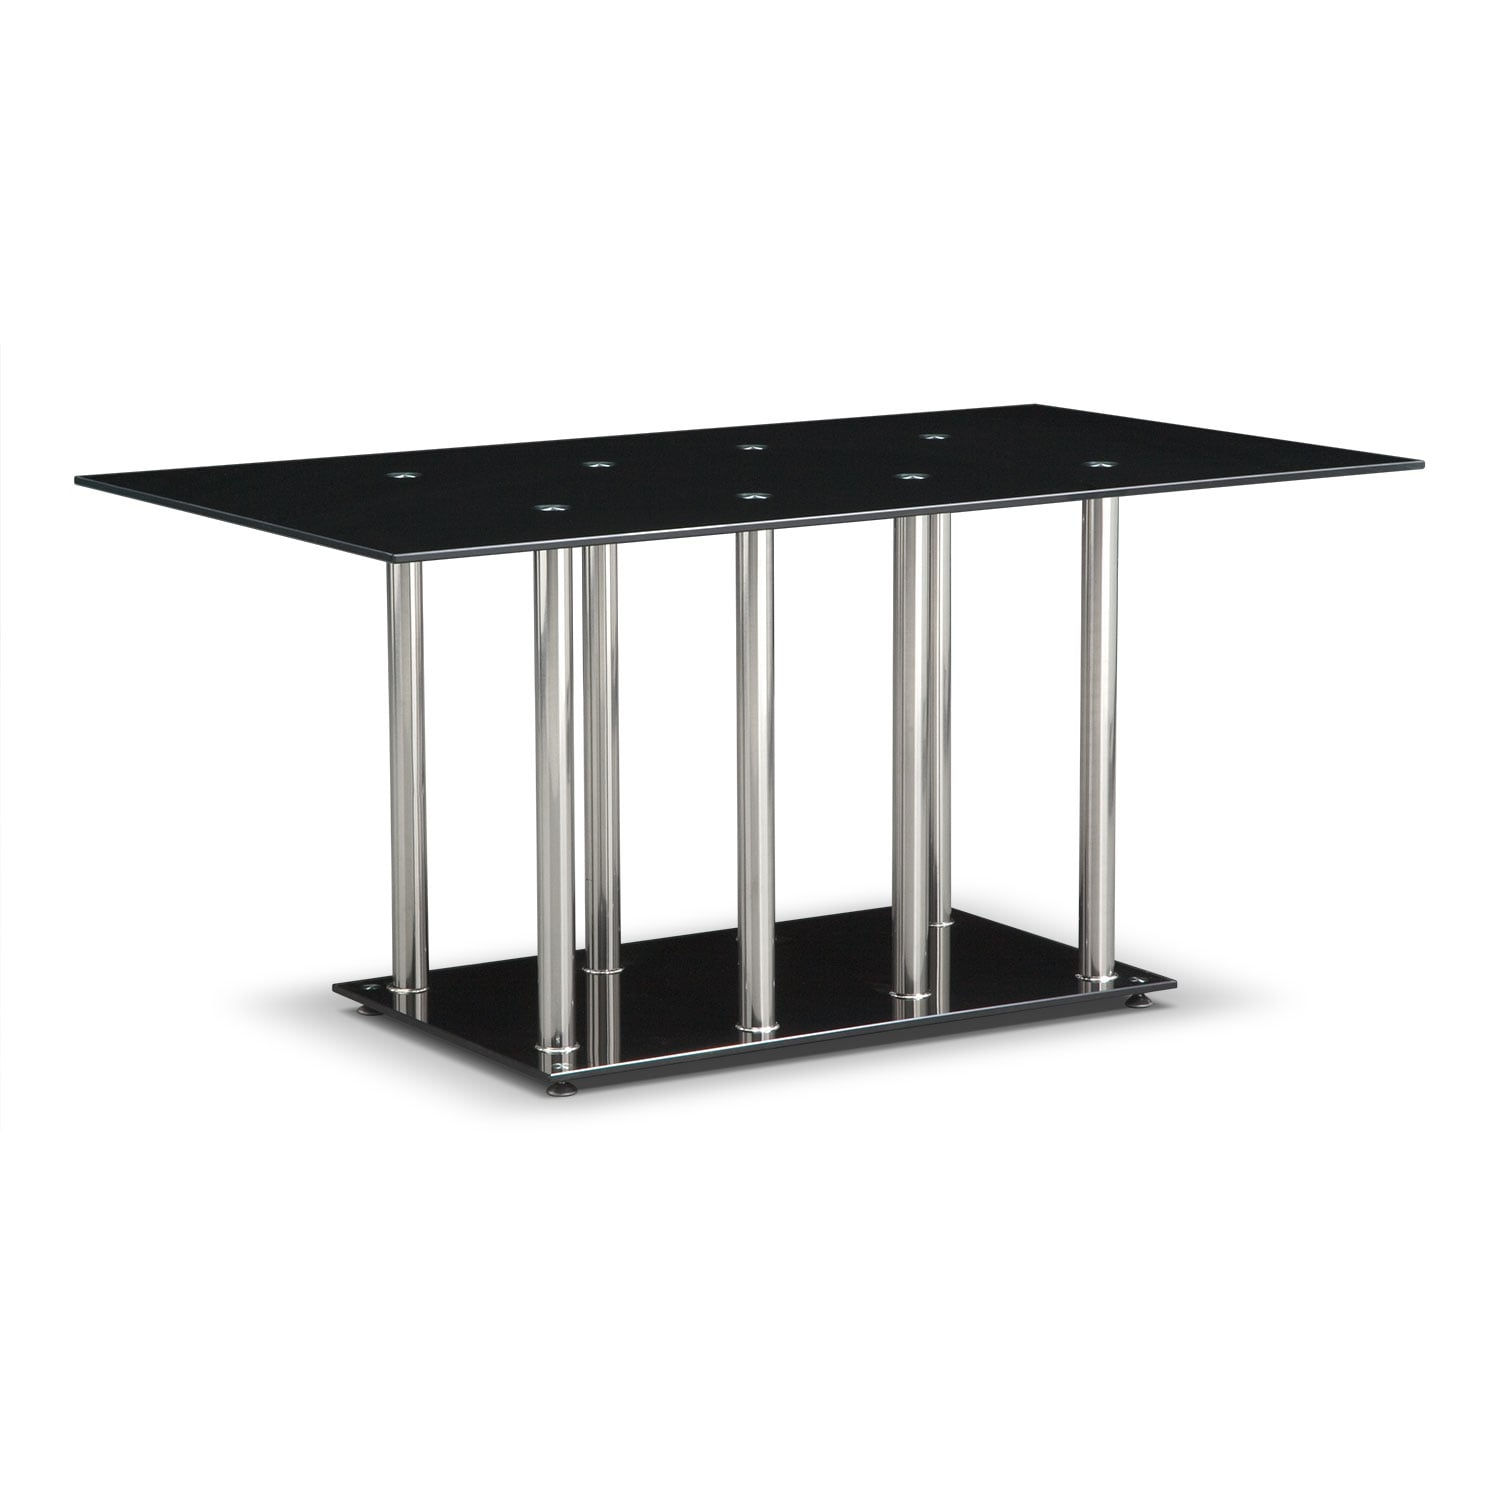 Dining Room Furniture - Stratus Table